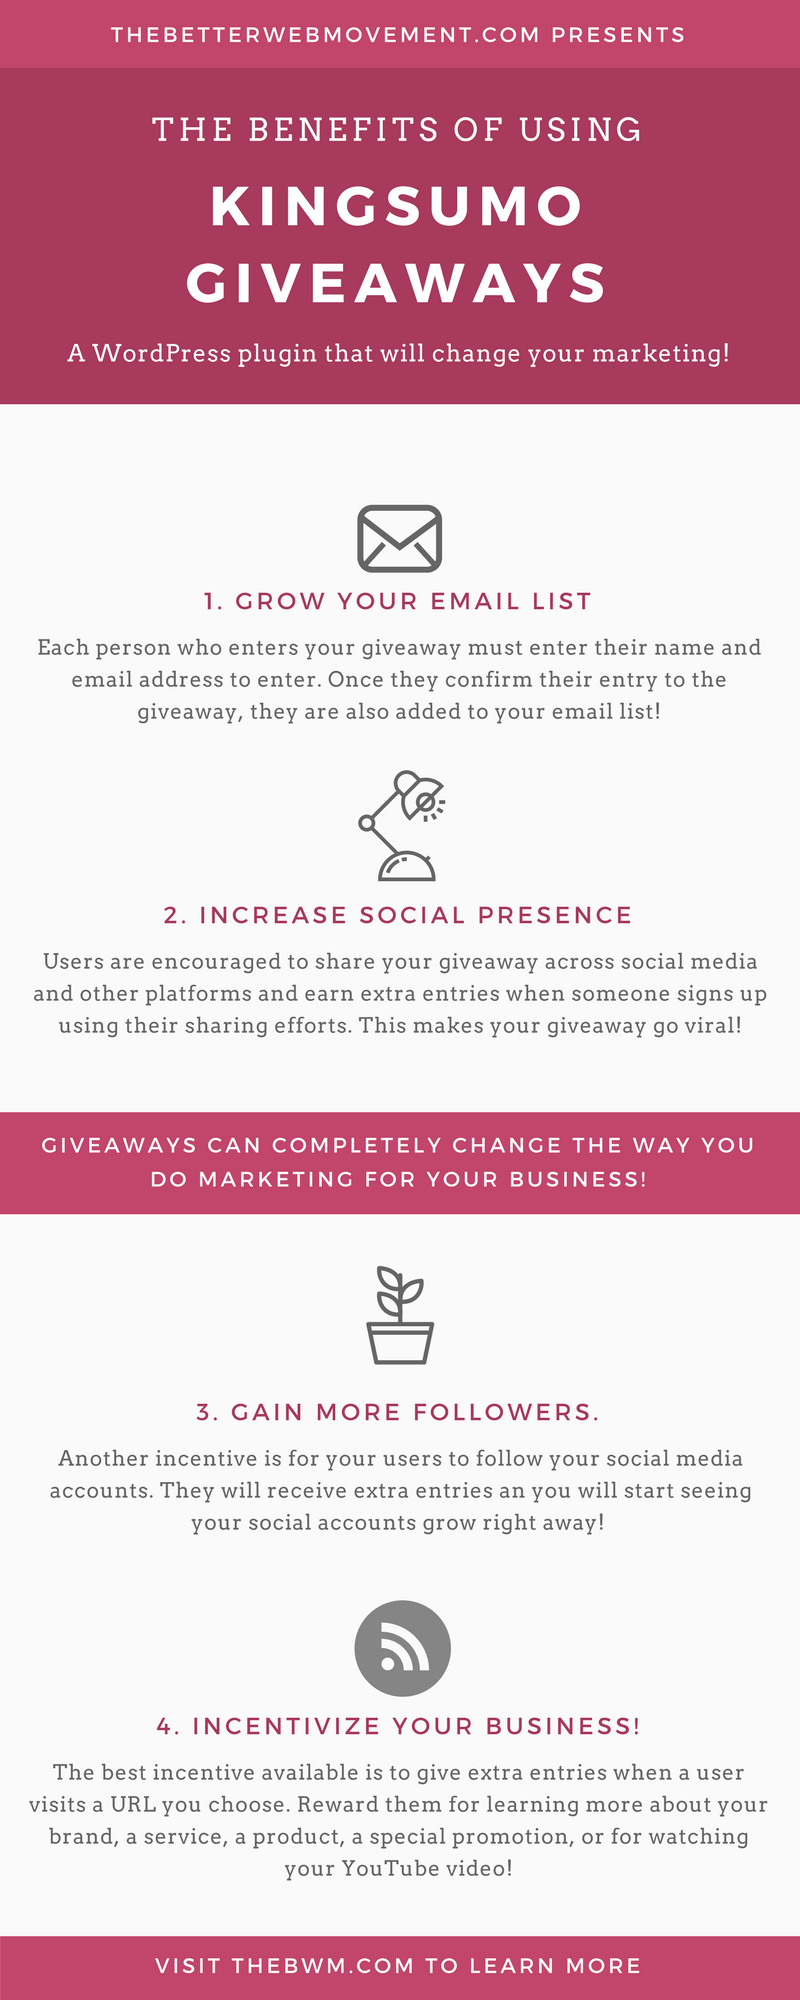 How to host a giveaway - The Better Web Movement